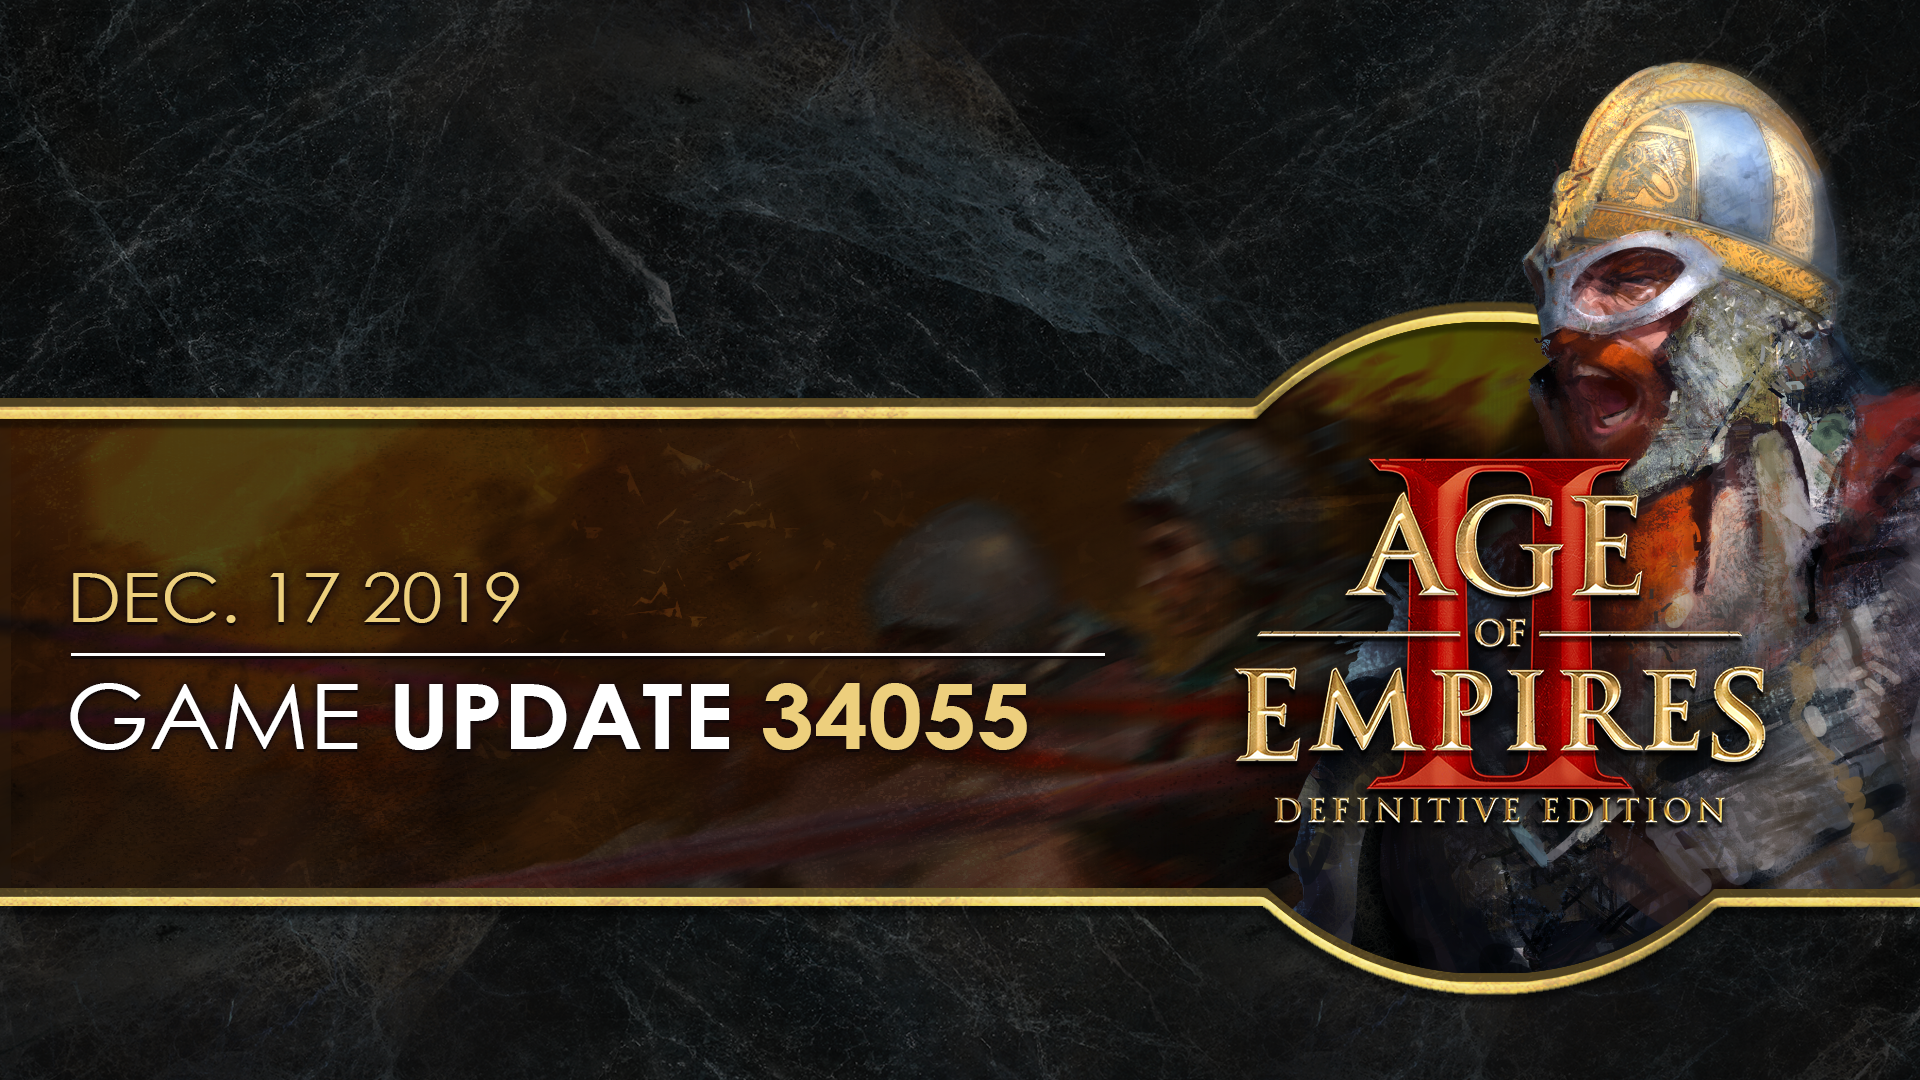 Age of Empires II: Definitive Edition — Update 34055